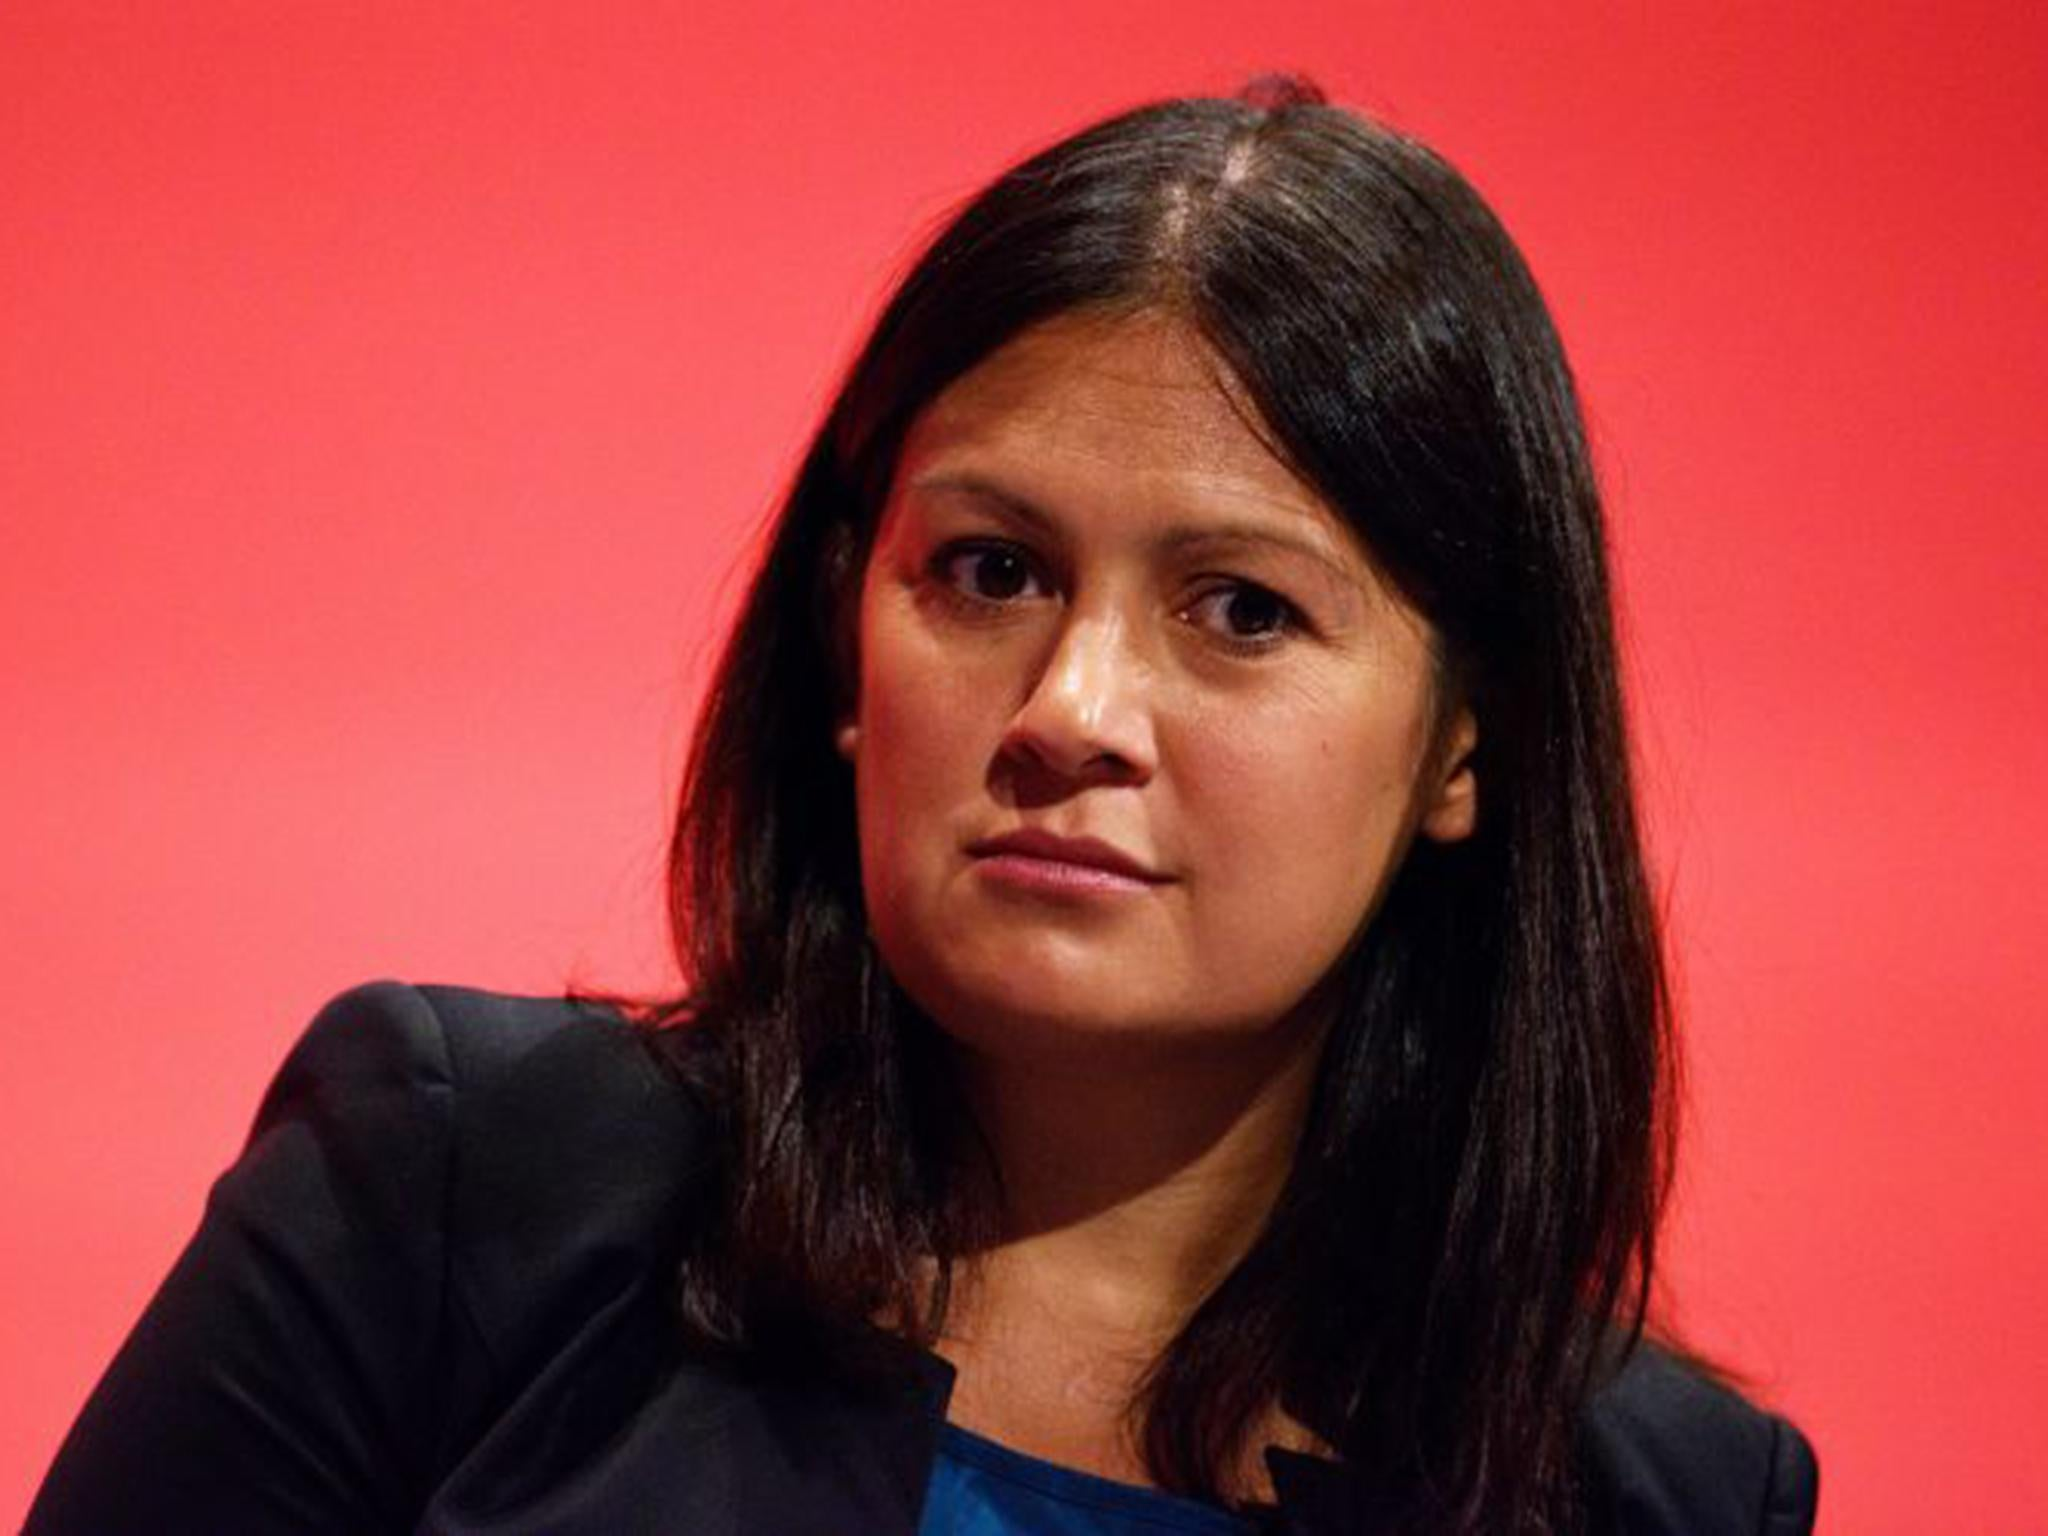 Lisa Nandy backed by GMB union in major boost to Labour leadership b…